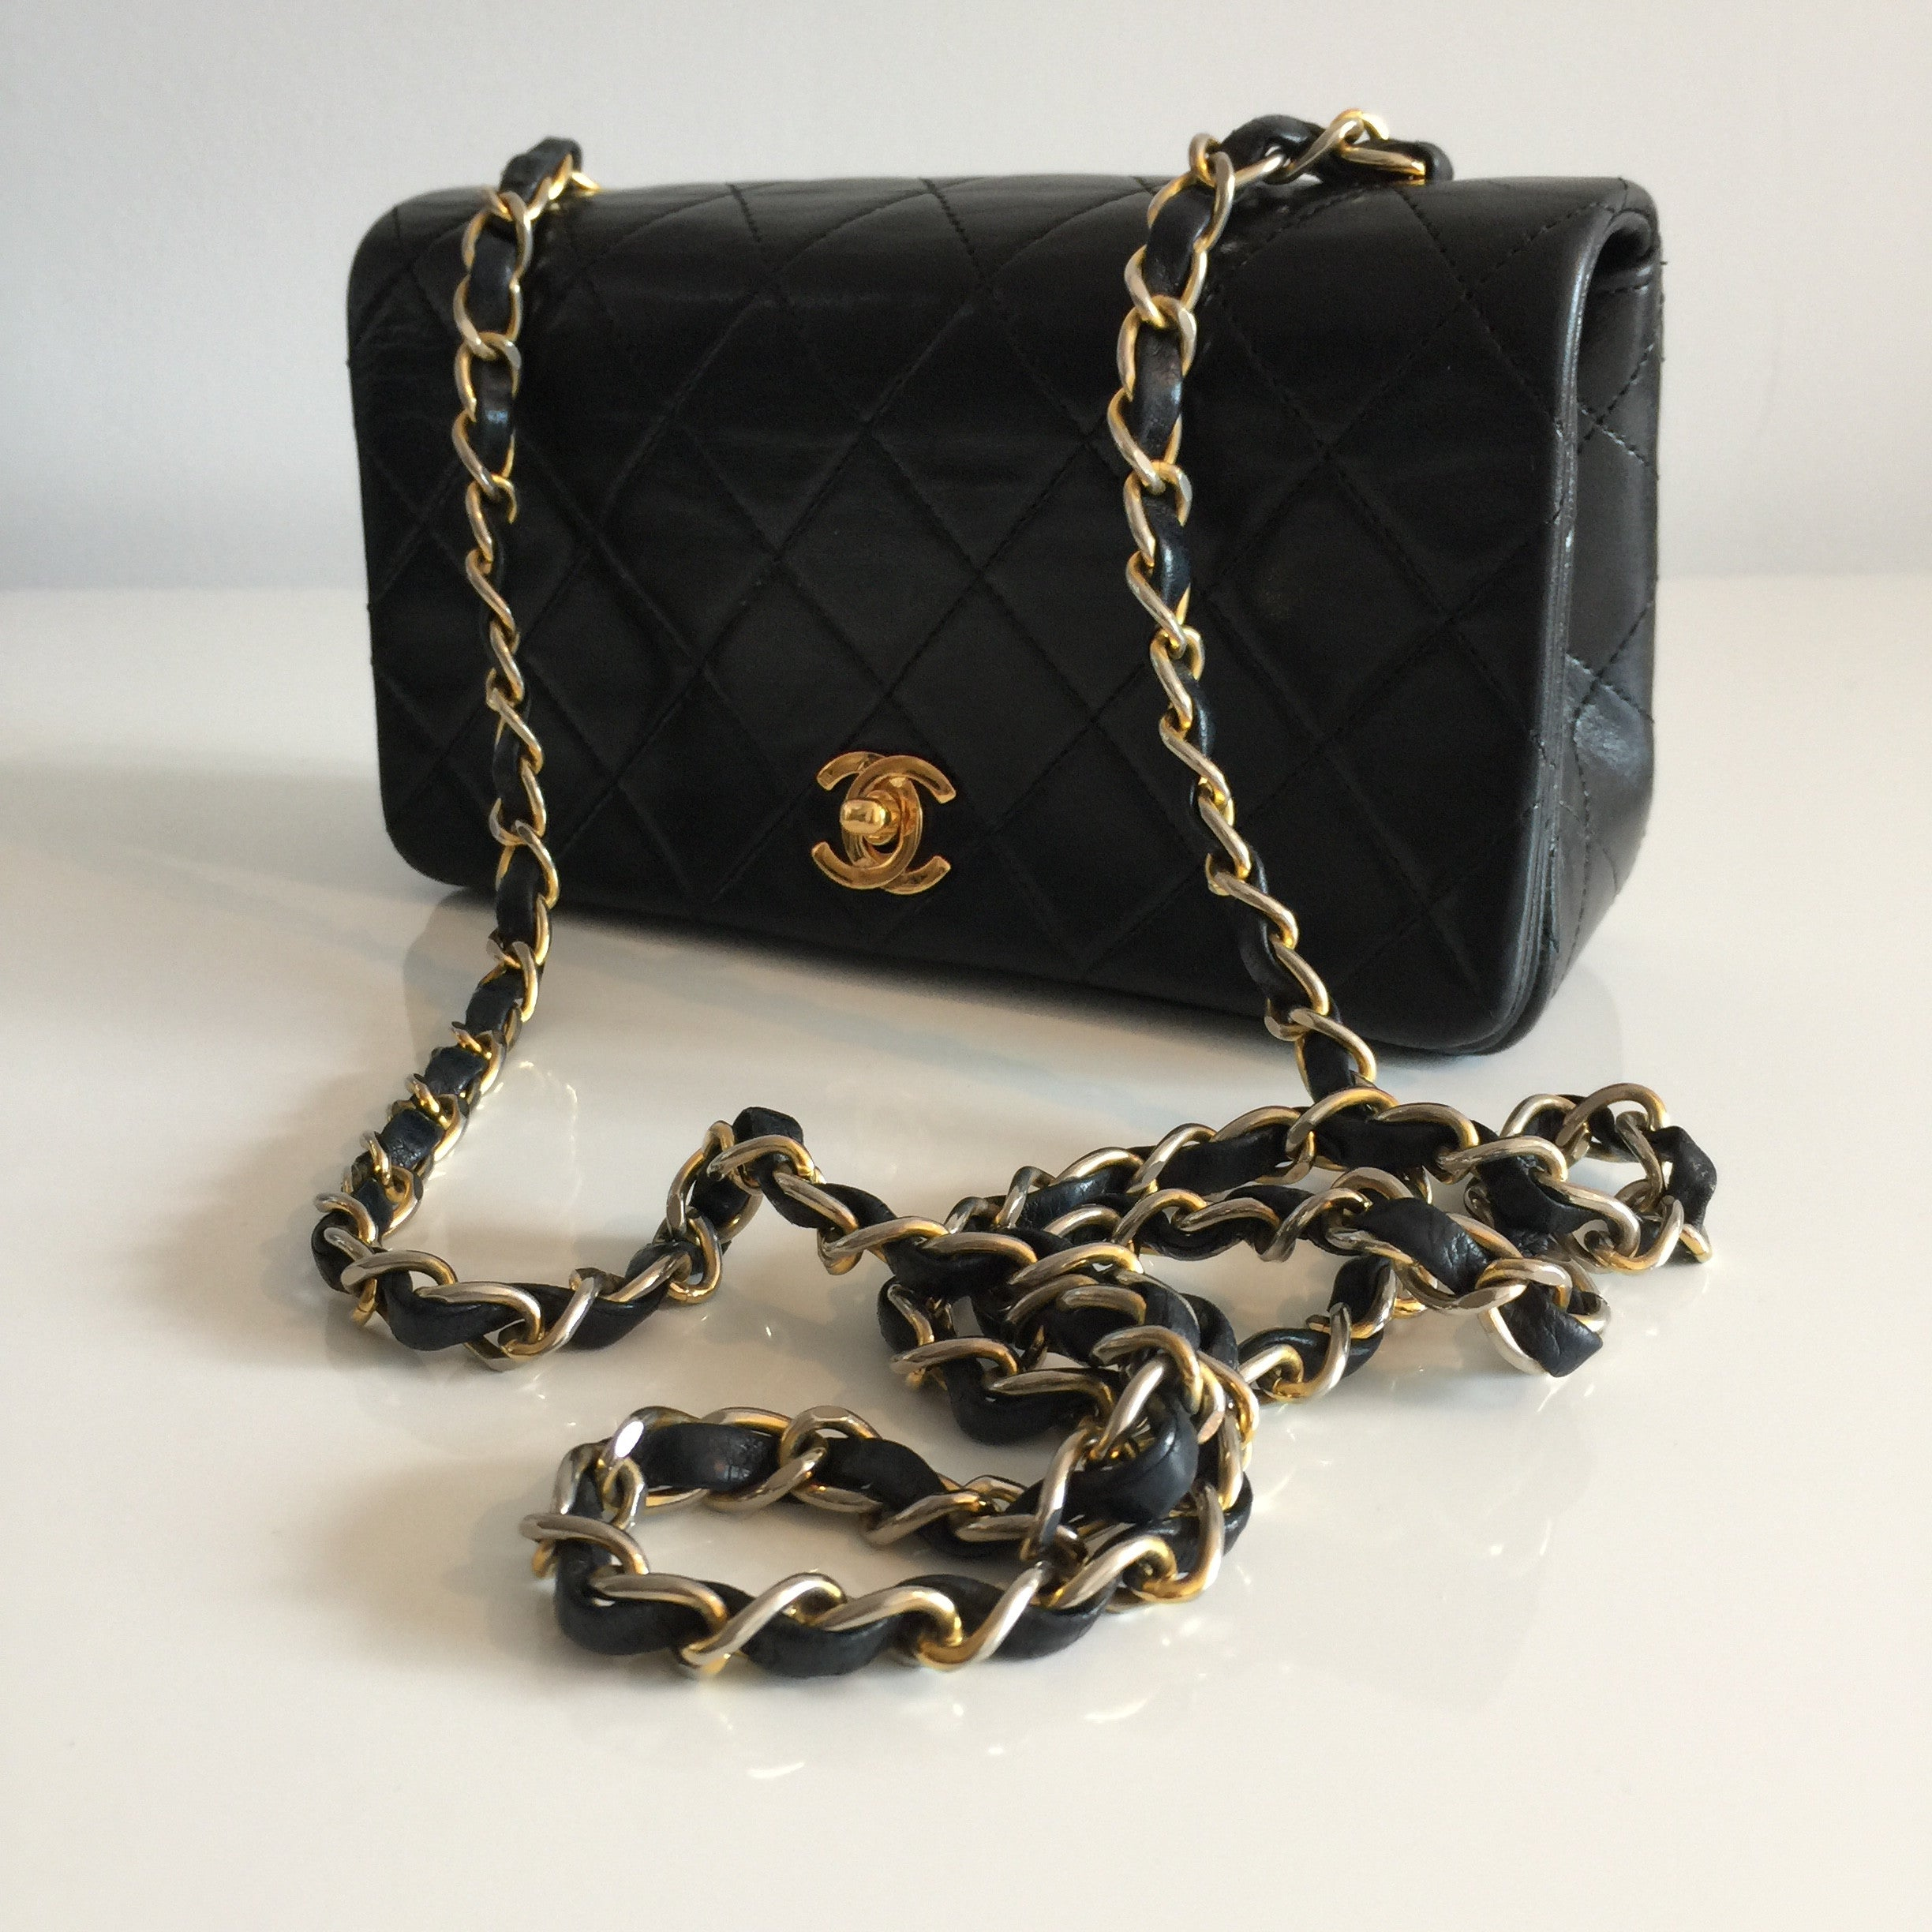 "Authentic CHANEL Vintage Full Flap 7"" Mini"